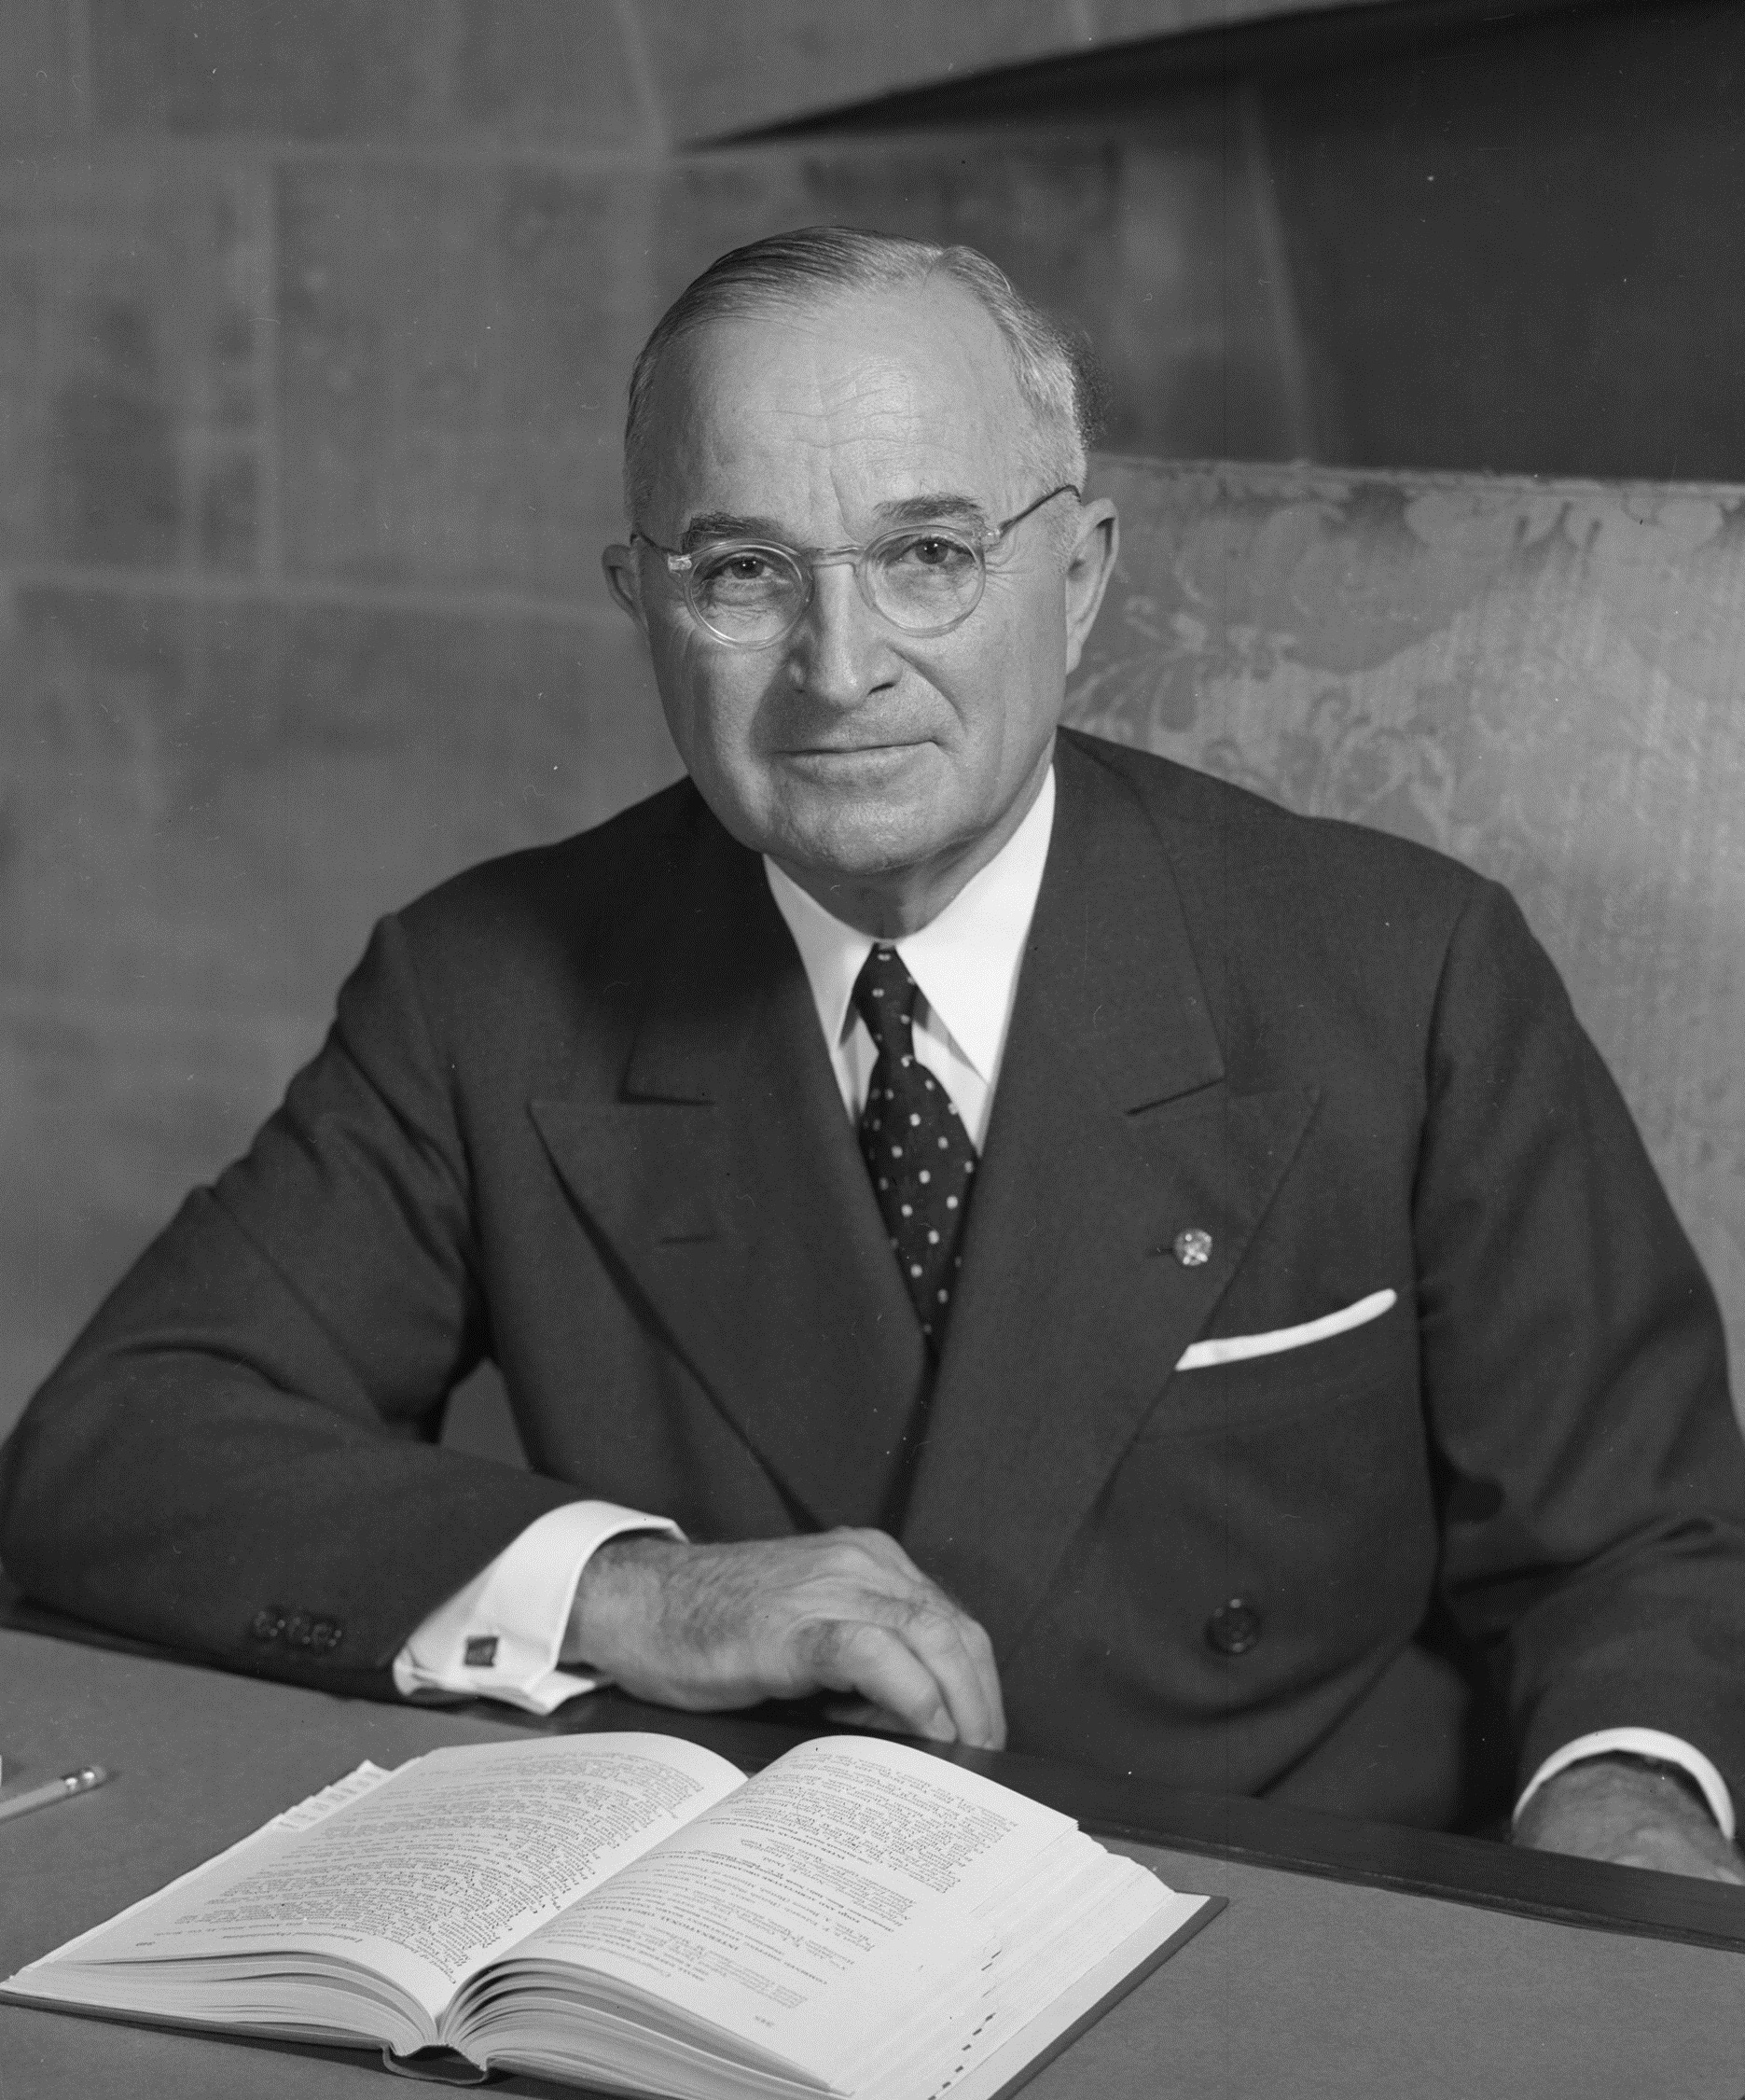 U.S. President Harry S. Truman in an official portrait. Image from the Still Picture Records Section, Special Media Archives Services Division (NWCS-S) of the National Archives and Records Administration, cataloged under the National Archives Identifier (NAID) 530677.